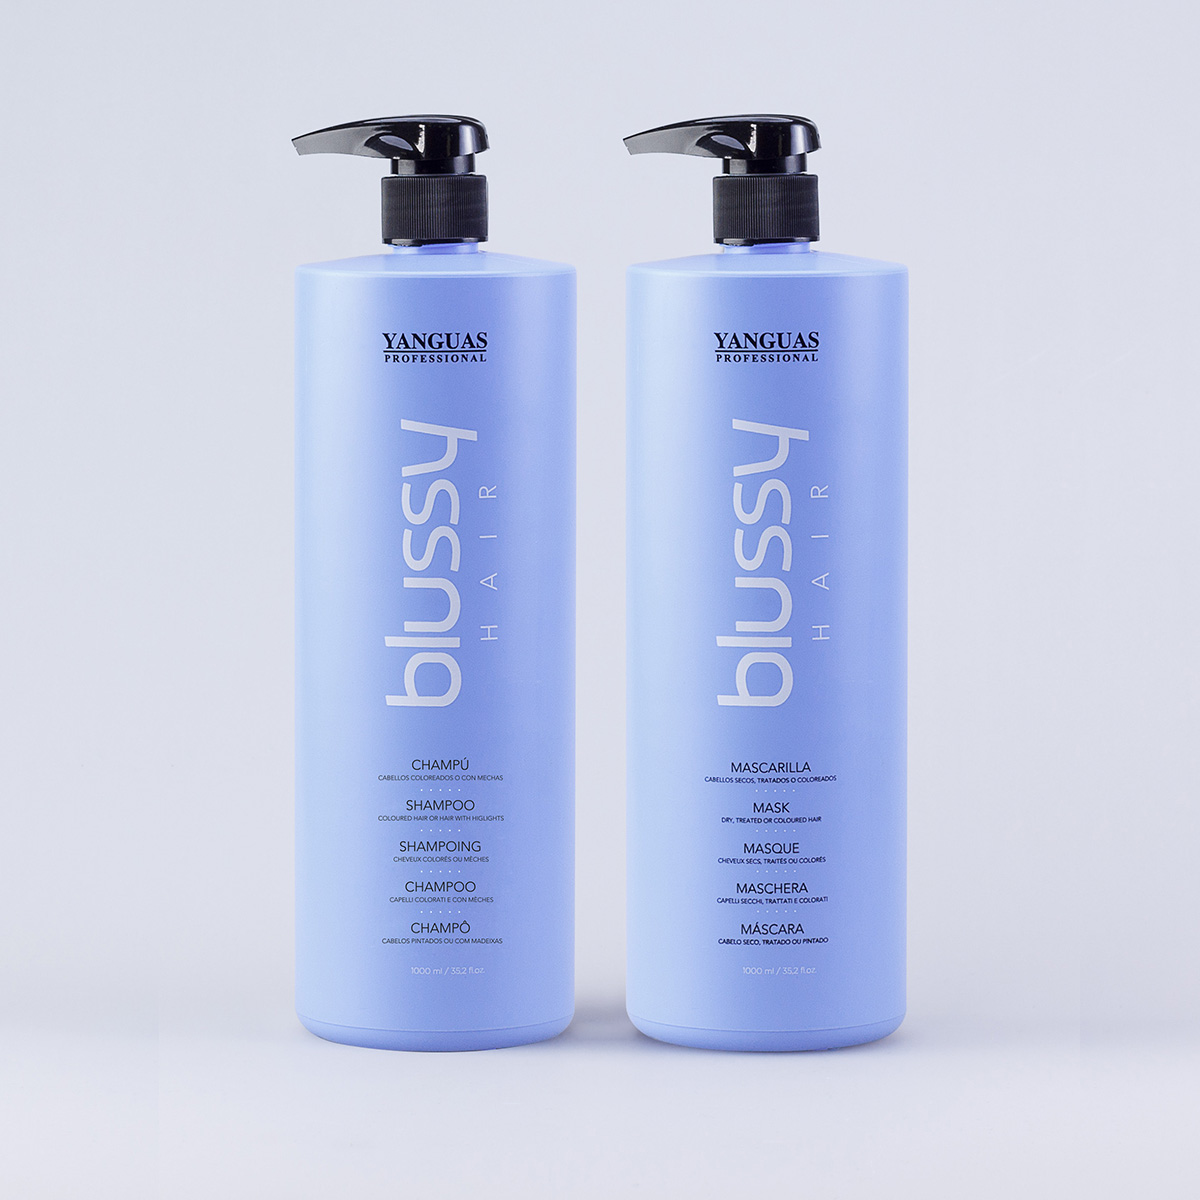 Tratamiento Nutritivo Del Color Blussy Hair - Yanguas Professional